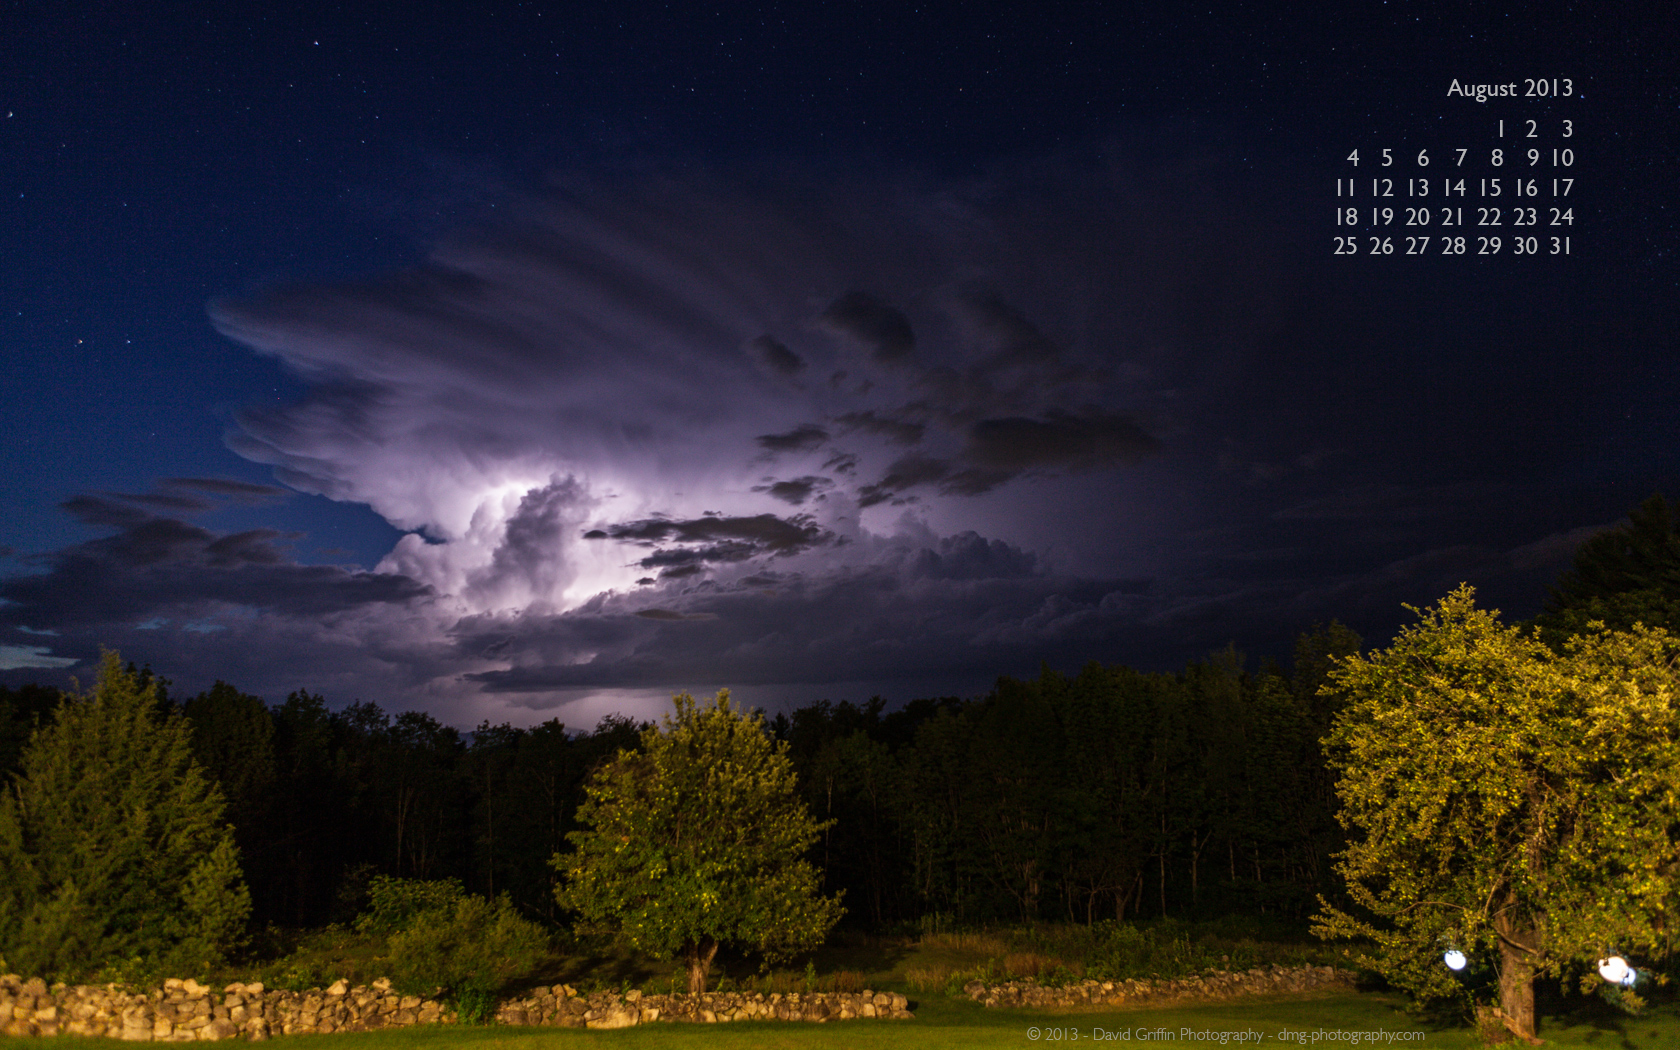 August 2013 Wallpaper David Griffin Photography 1680x1050